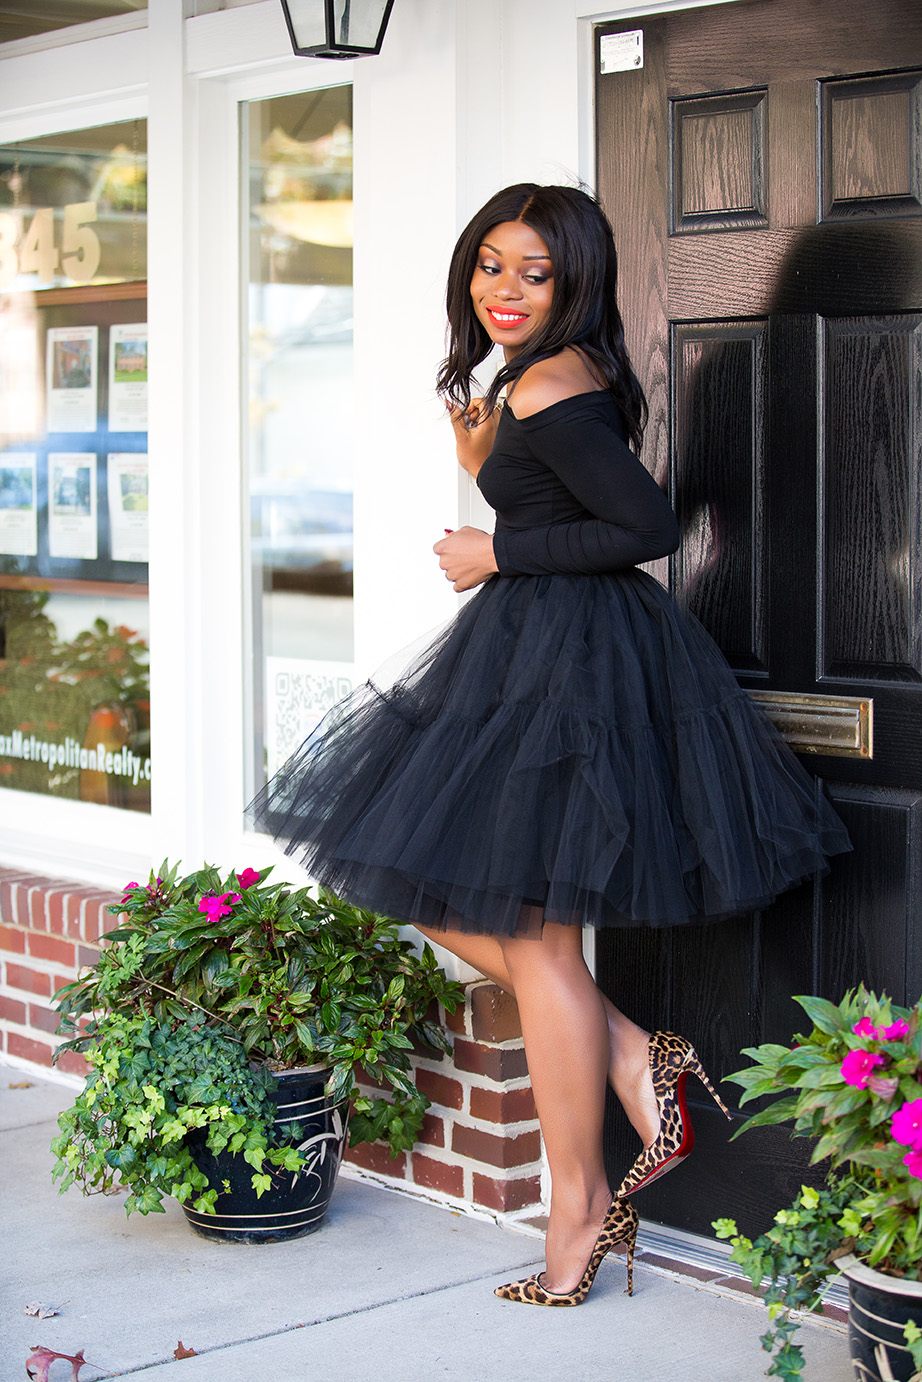 costume party in tulle skirt, www.jadore-fashion.com